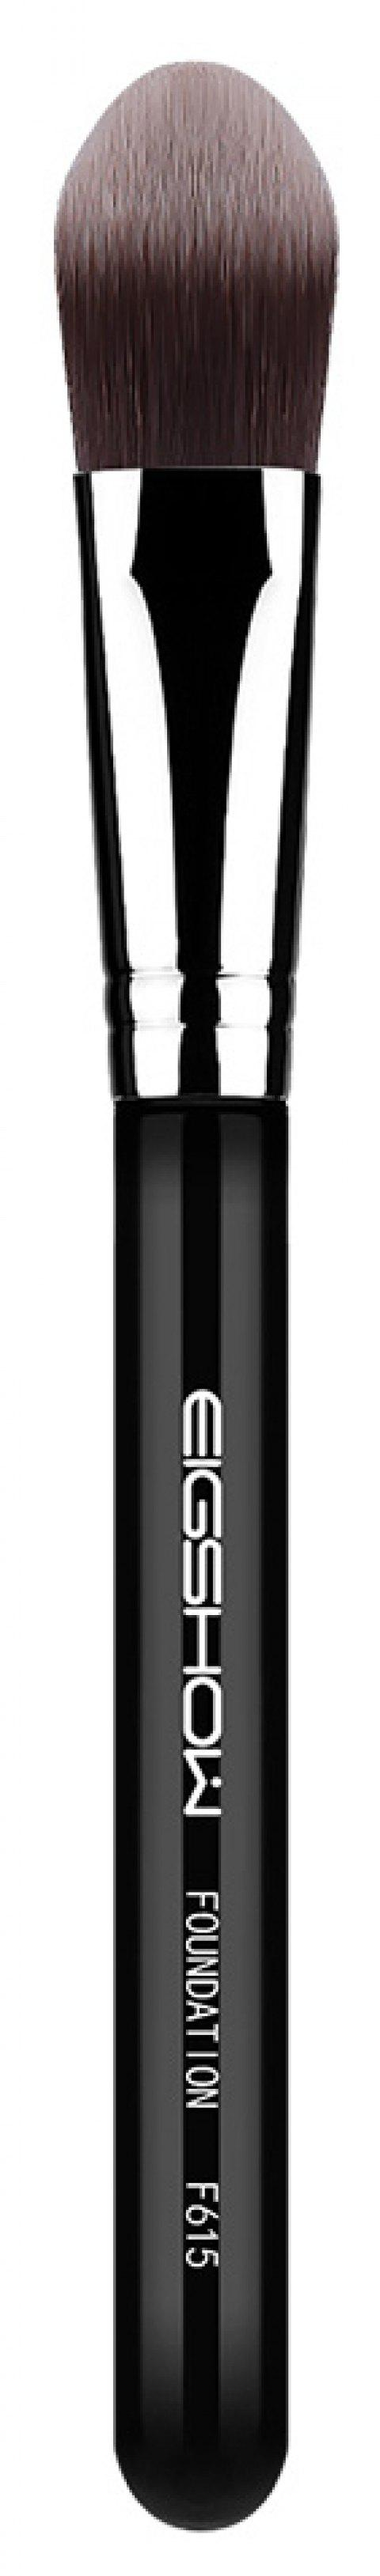 EIGSHOW F615 FOUNDATION Cosmetics Shader  Makeup - BLACK